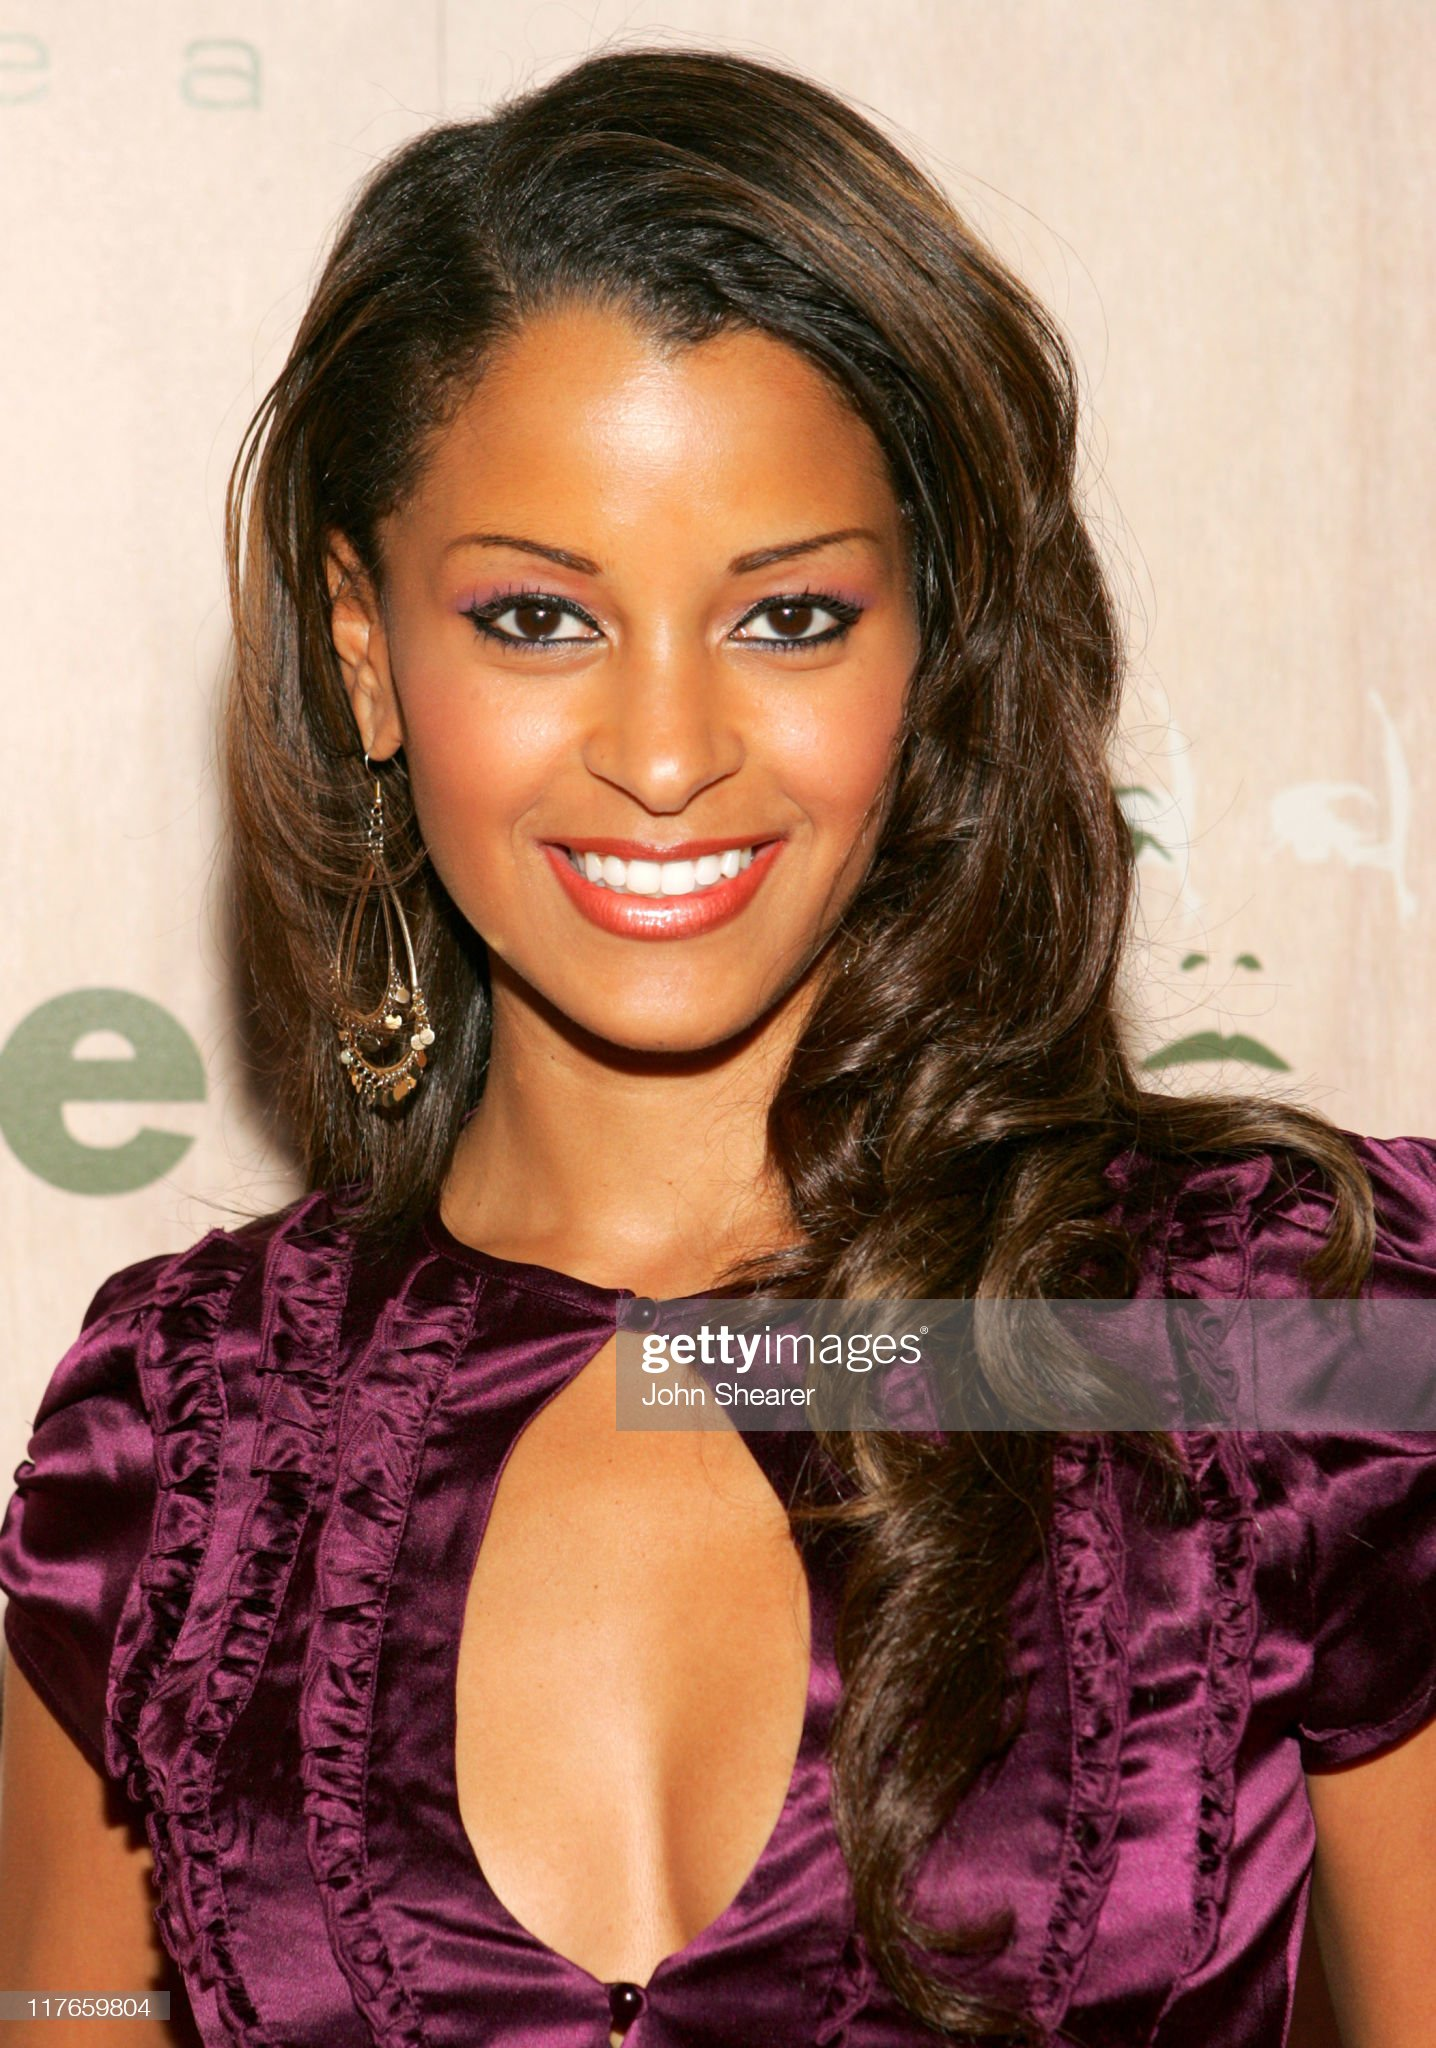 ¿Cuánto mide Claudia Jordan? - Real height Claudia-jordan-during-grand-opening-of-sbes-area-nightclub-red-carpet-picture-id117659804?s=2048x2048